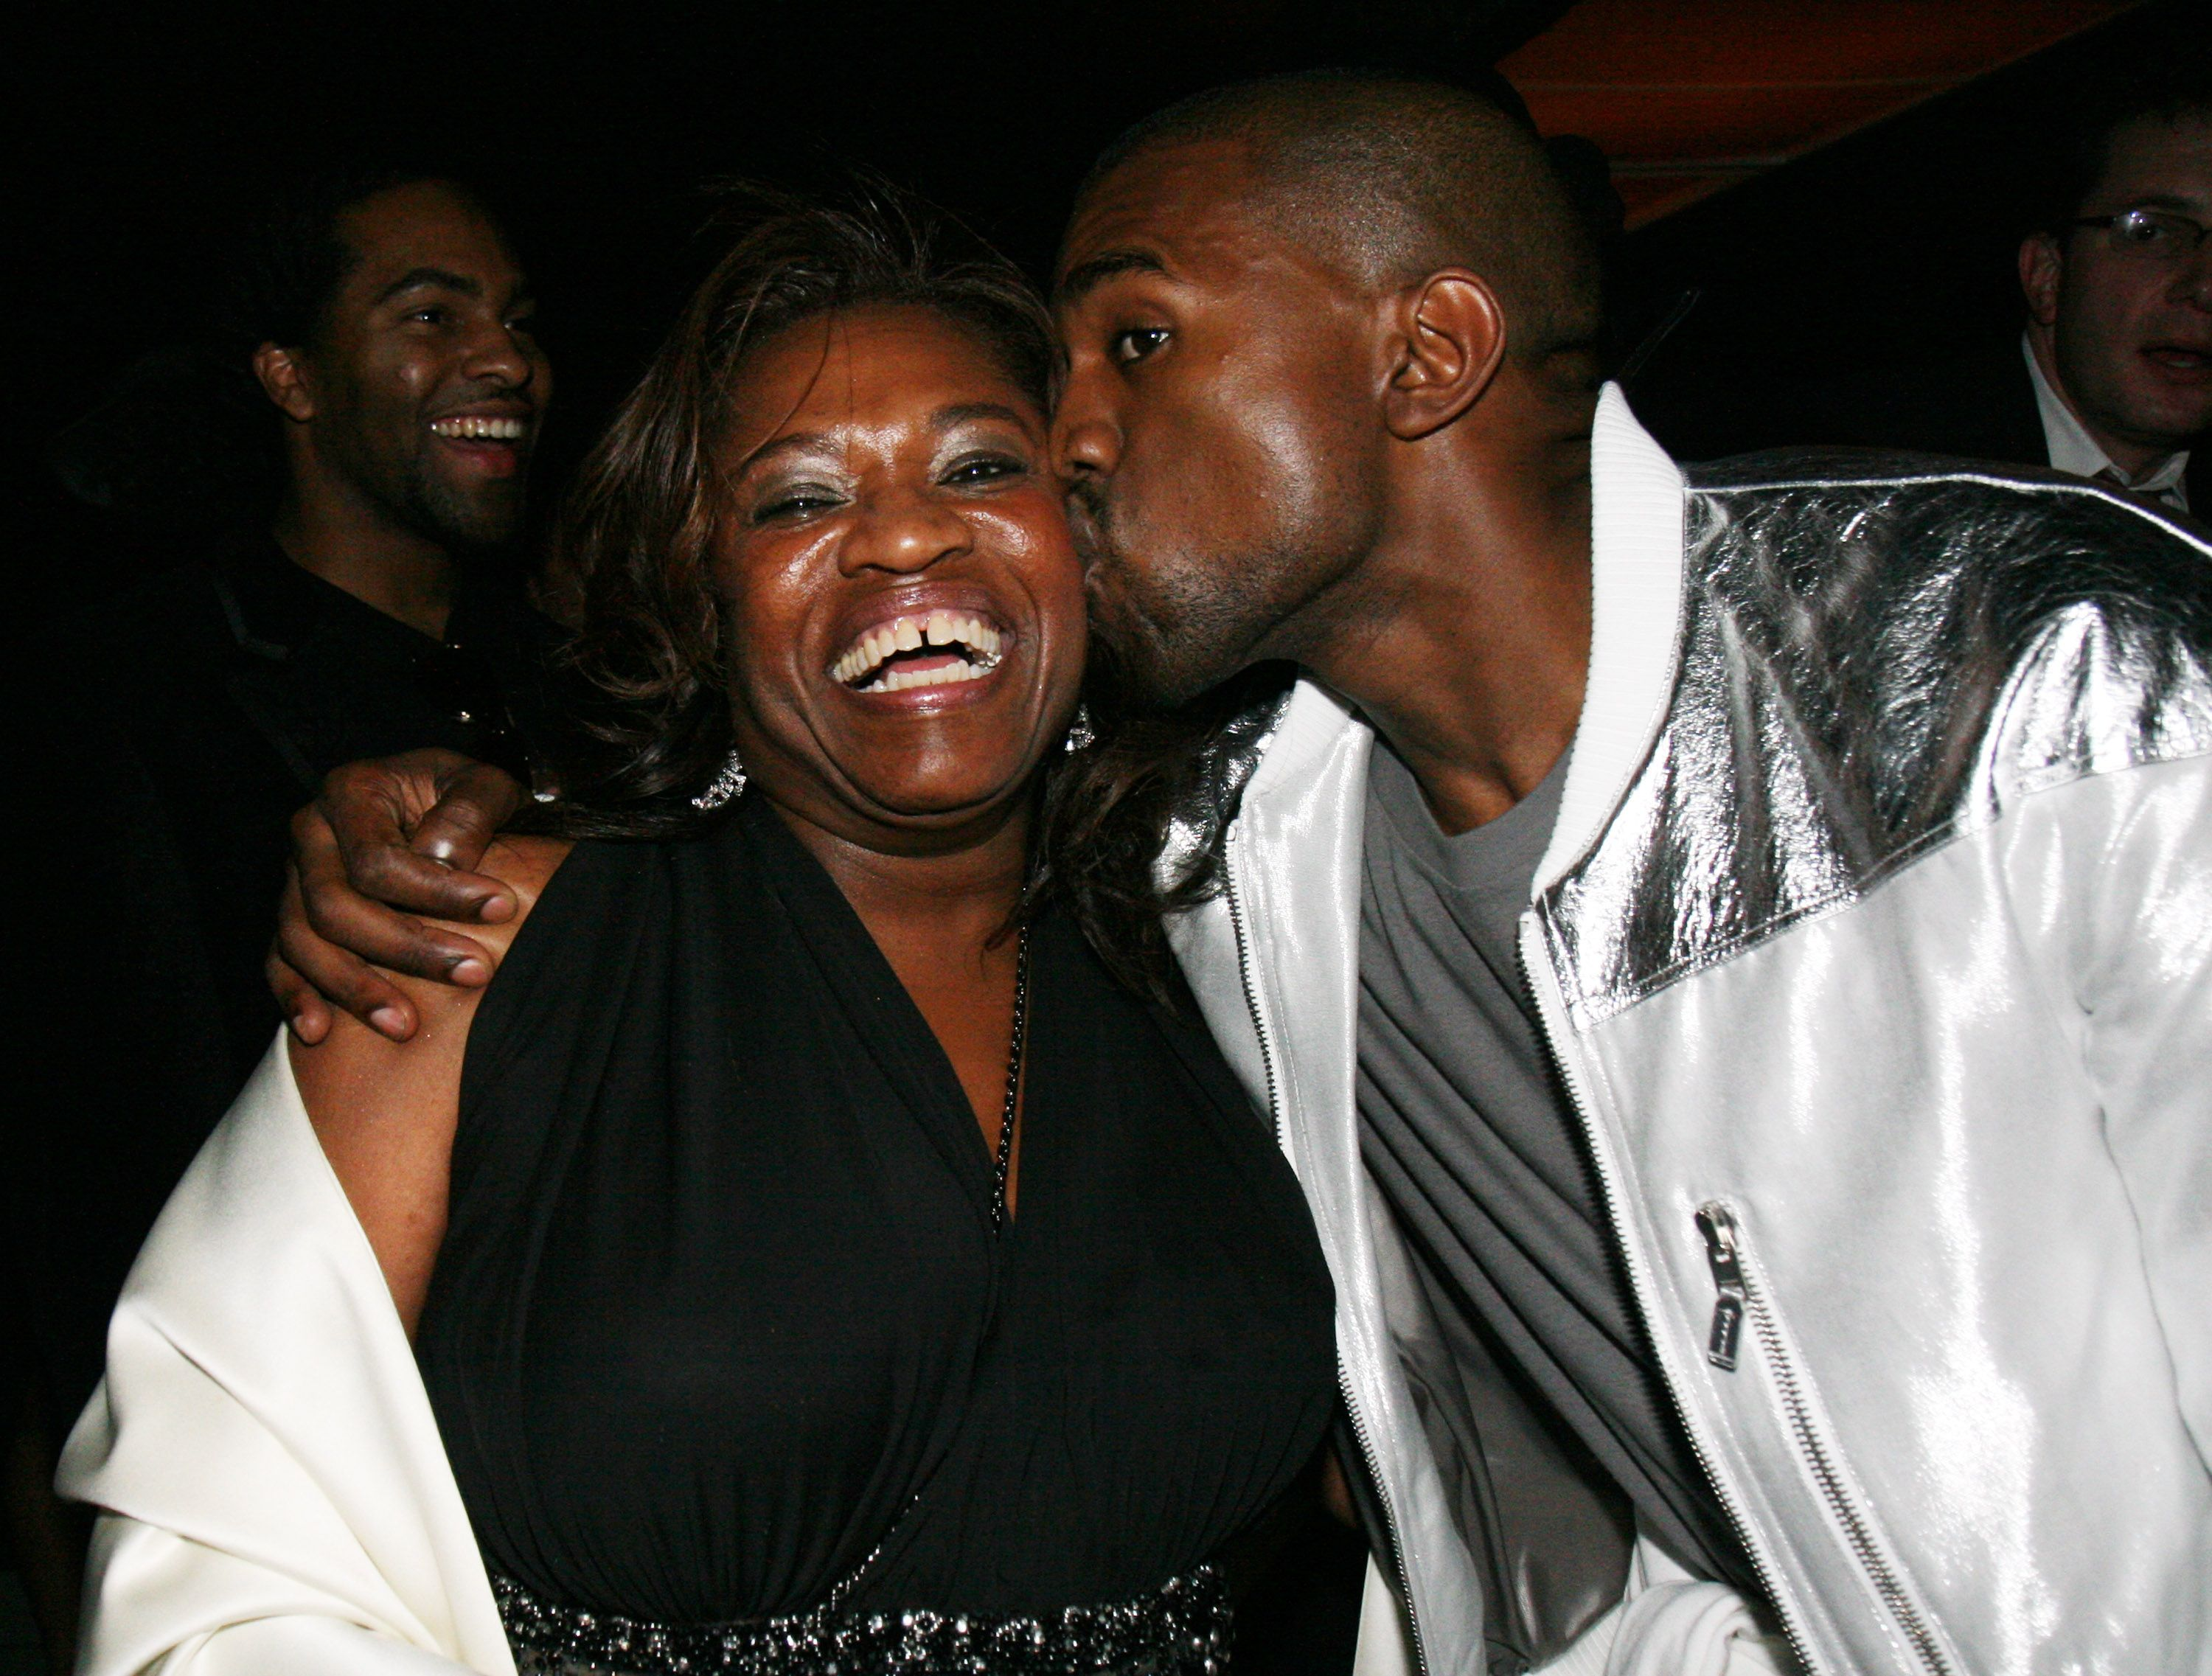 Donda West and Kanye West at Queen Latifah's post GRAMMYs party in February 2007 | Source: Getty Images